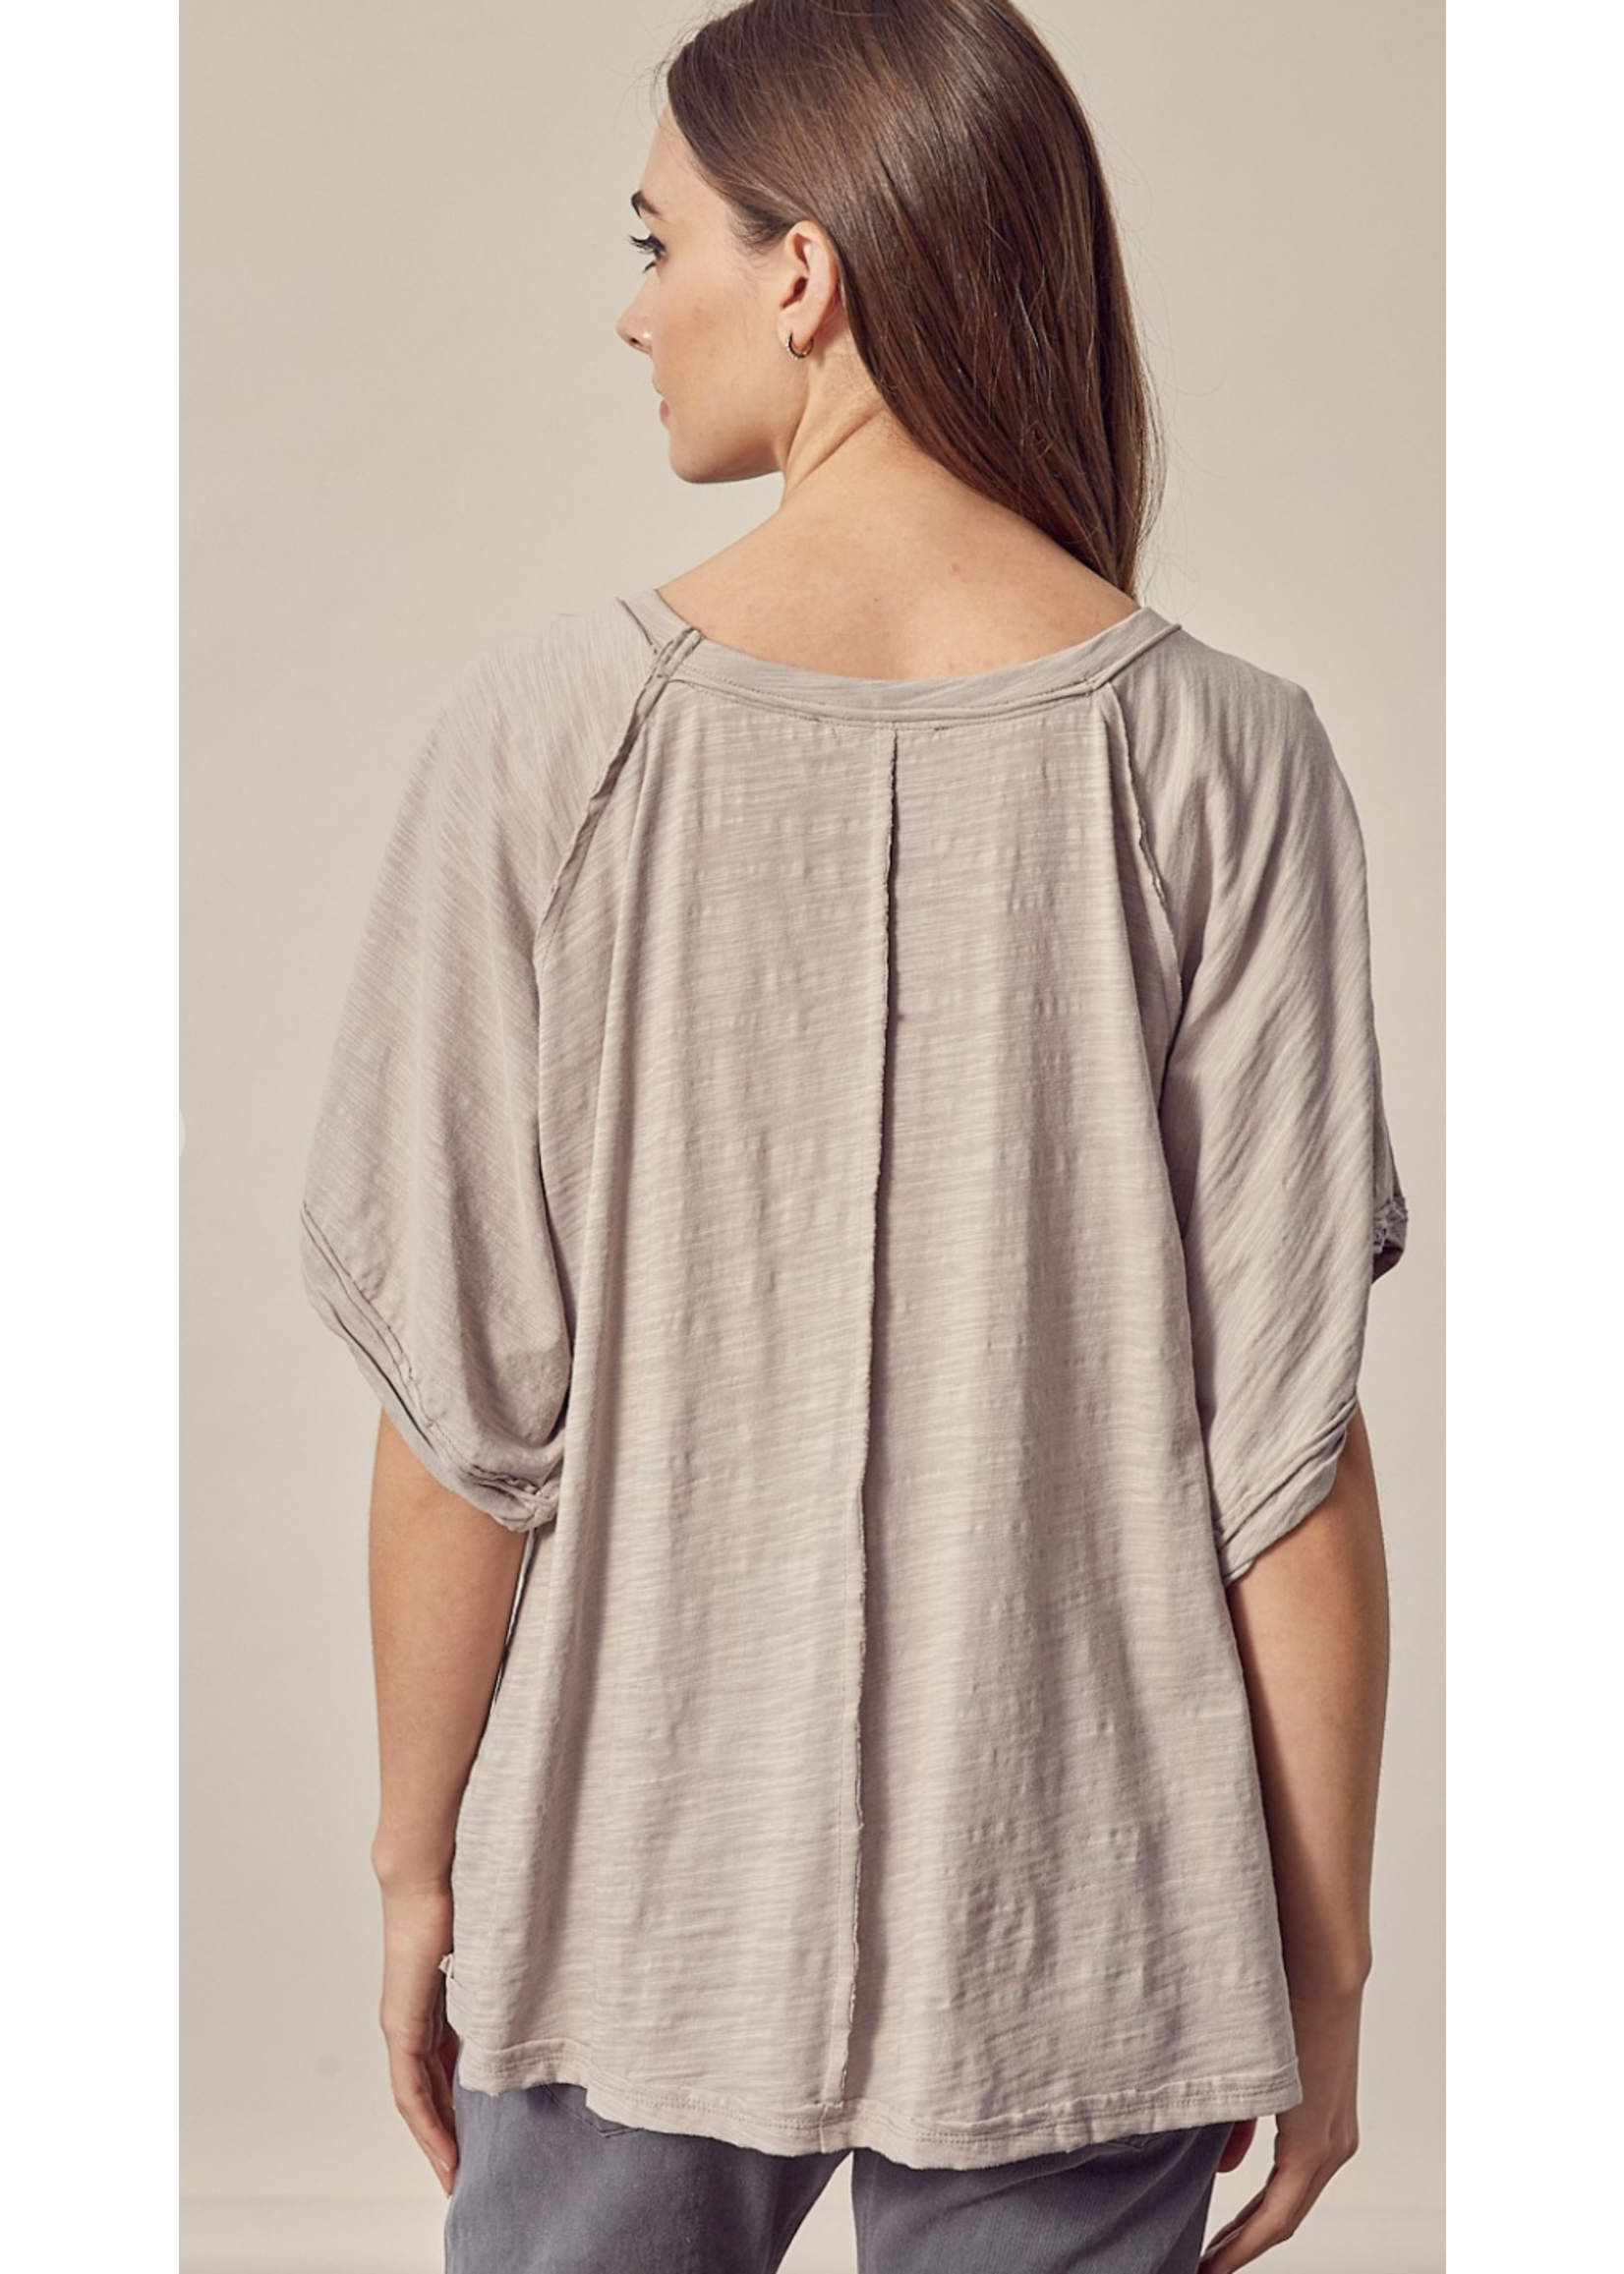 Mustard Seed Deep Round Neck Pullover Top - S18335